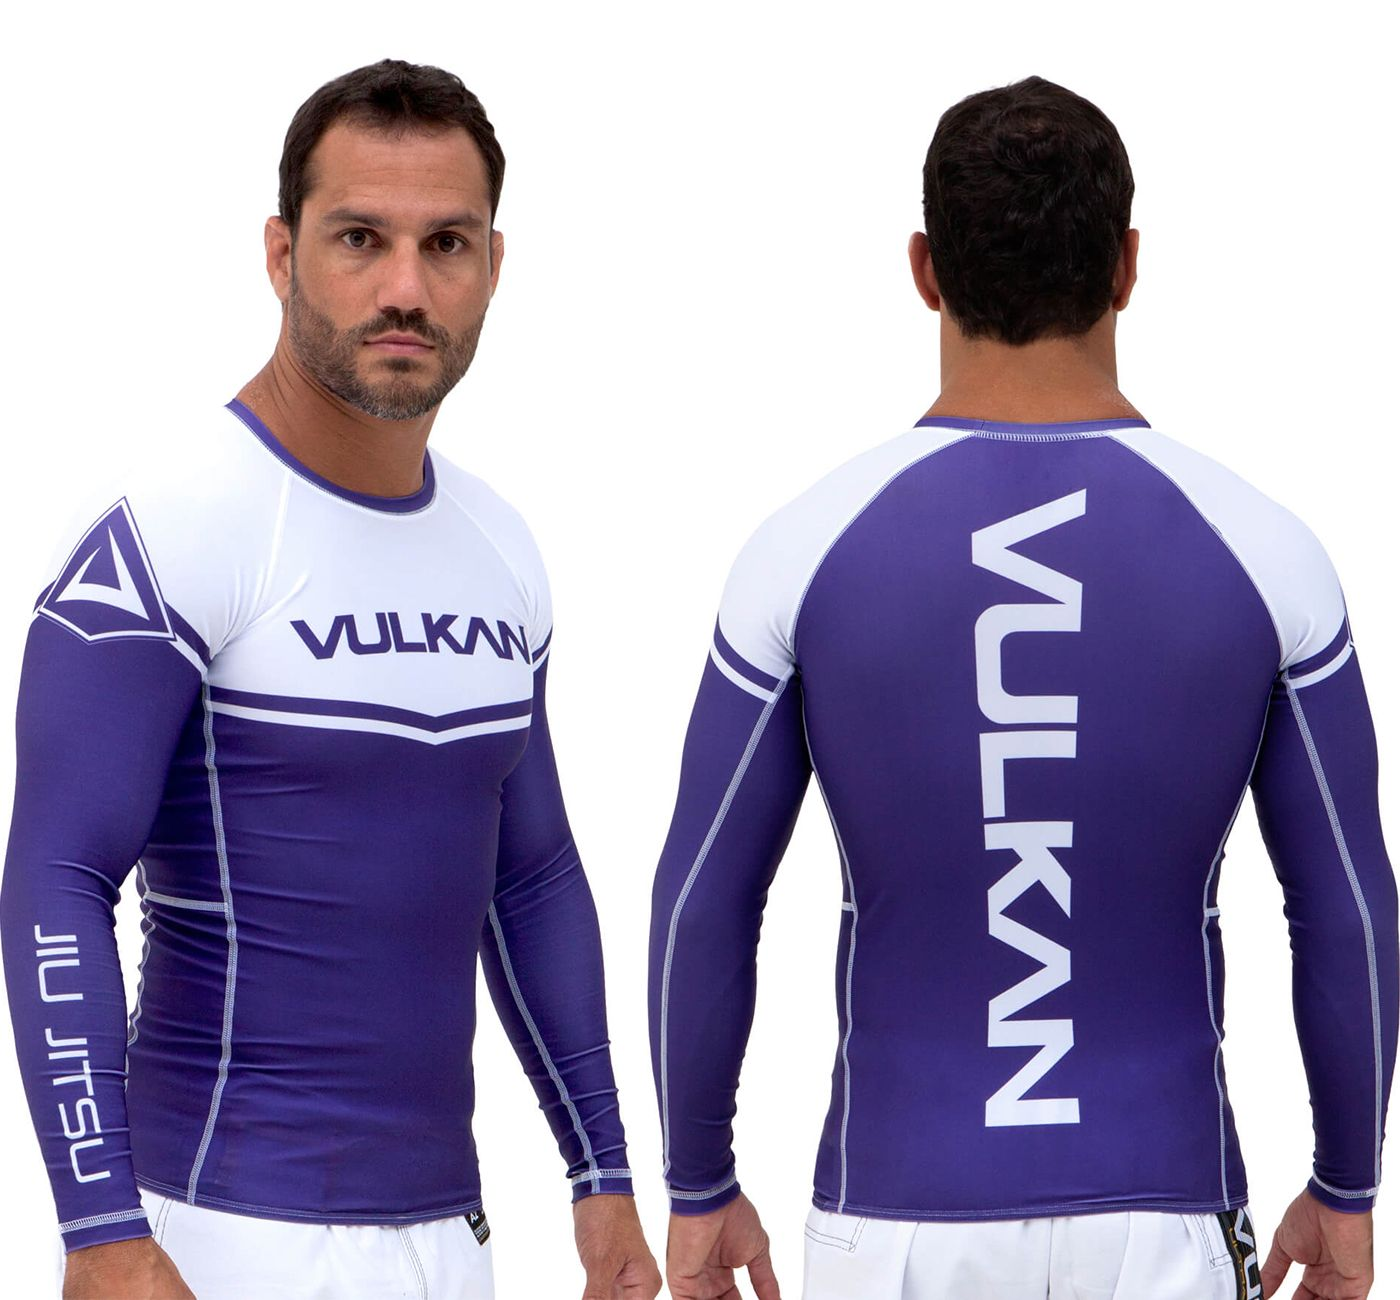 Vulkan Ranked Rashguard - Purple - LS